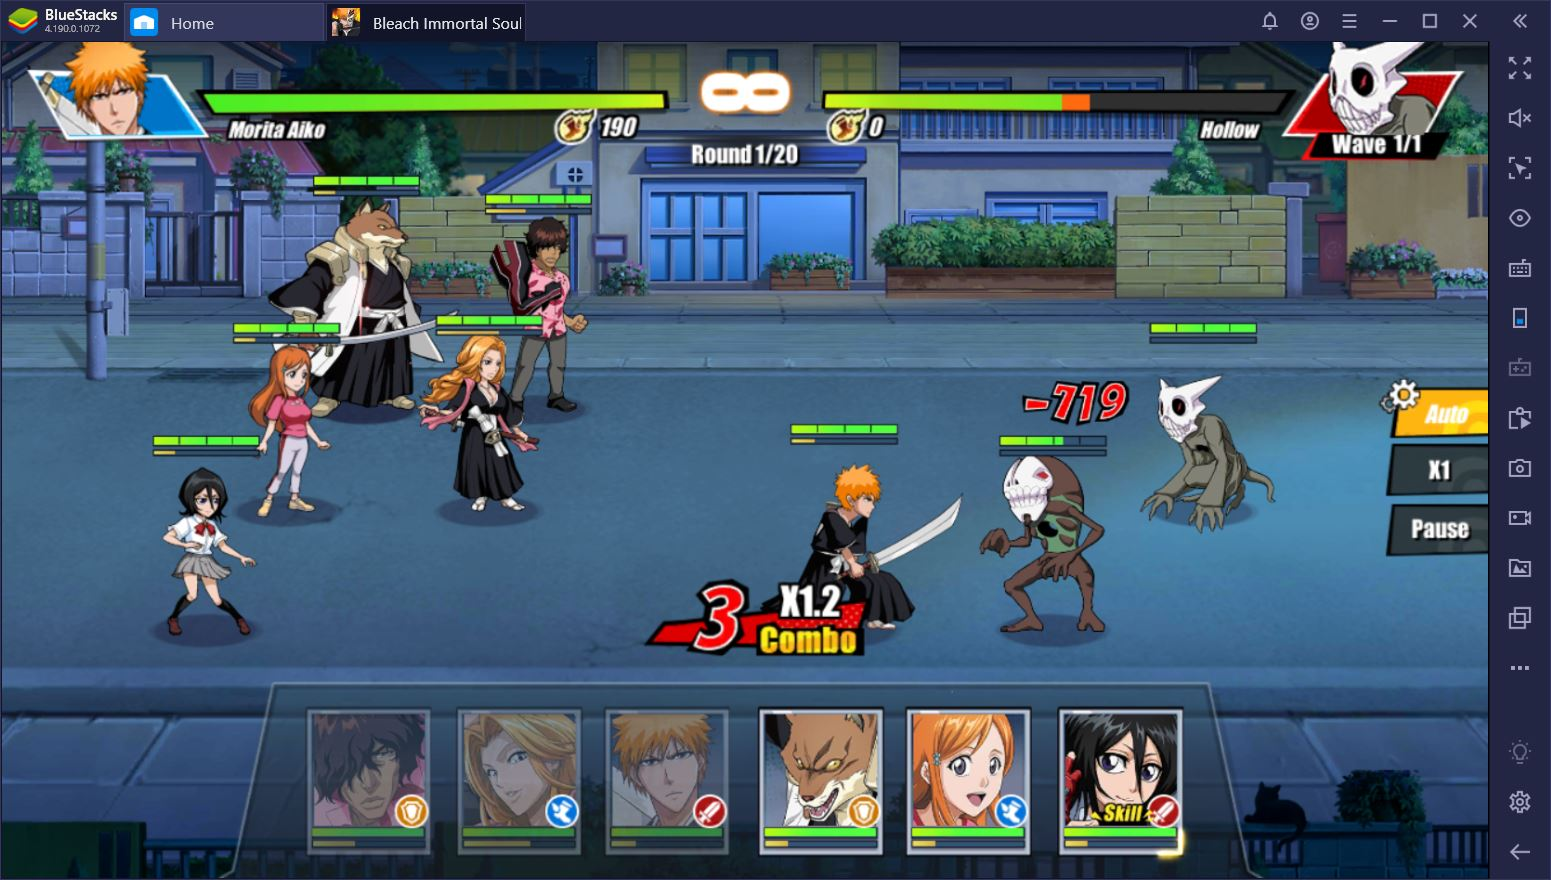 Bleach: Immortal Soul on PC – Team Formation Guide